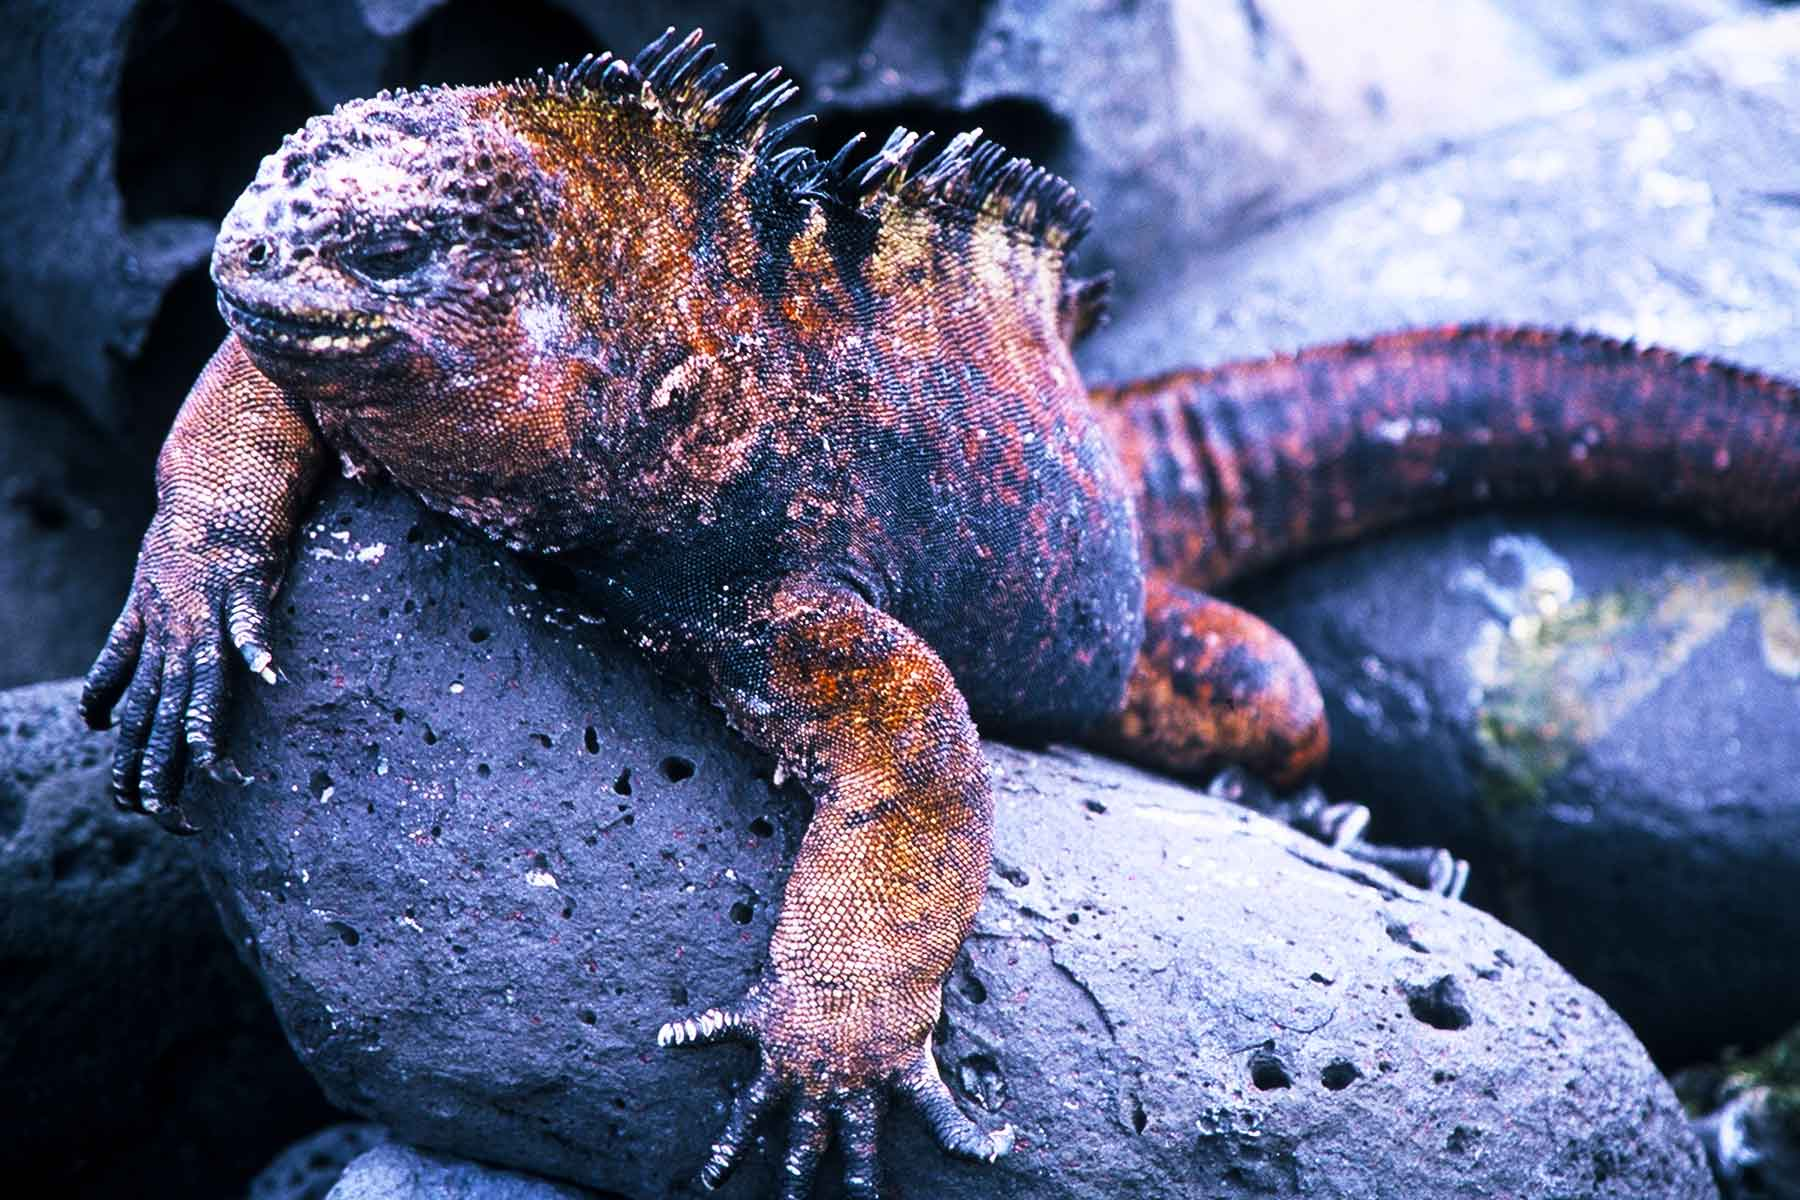 Galapagos Marine Iguana | Steven Andrew Martin | Photo Journal | Ecuador Research | Environmental Studies